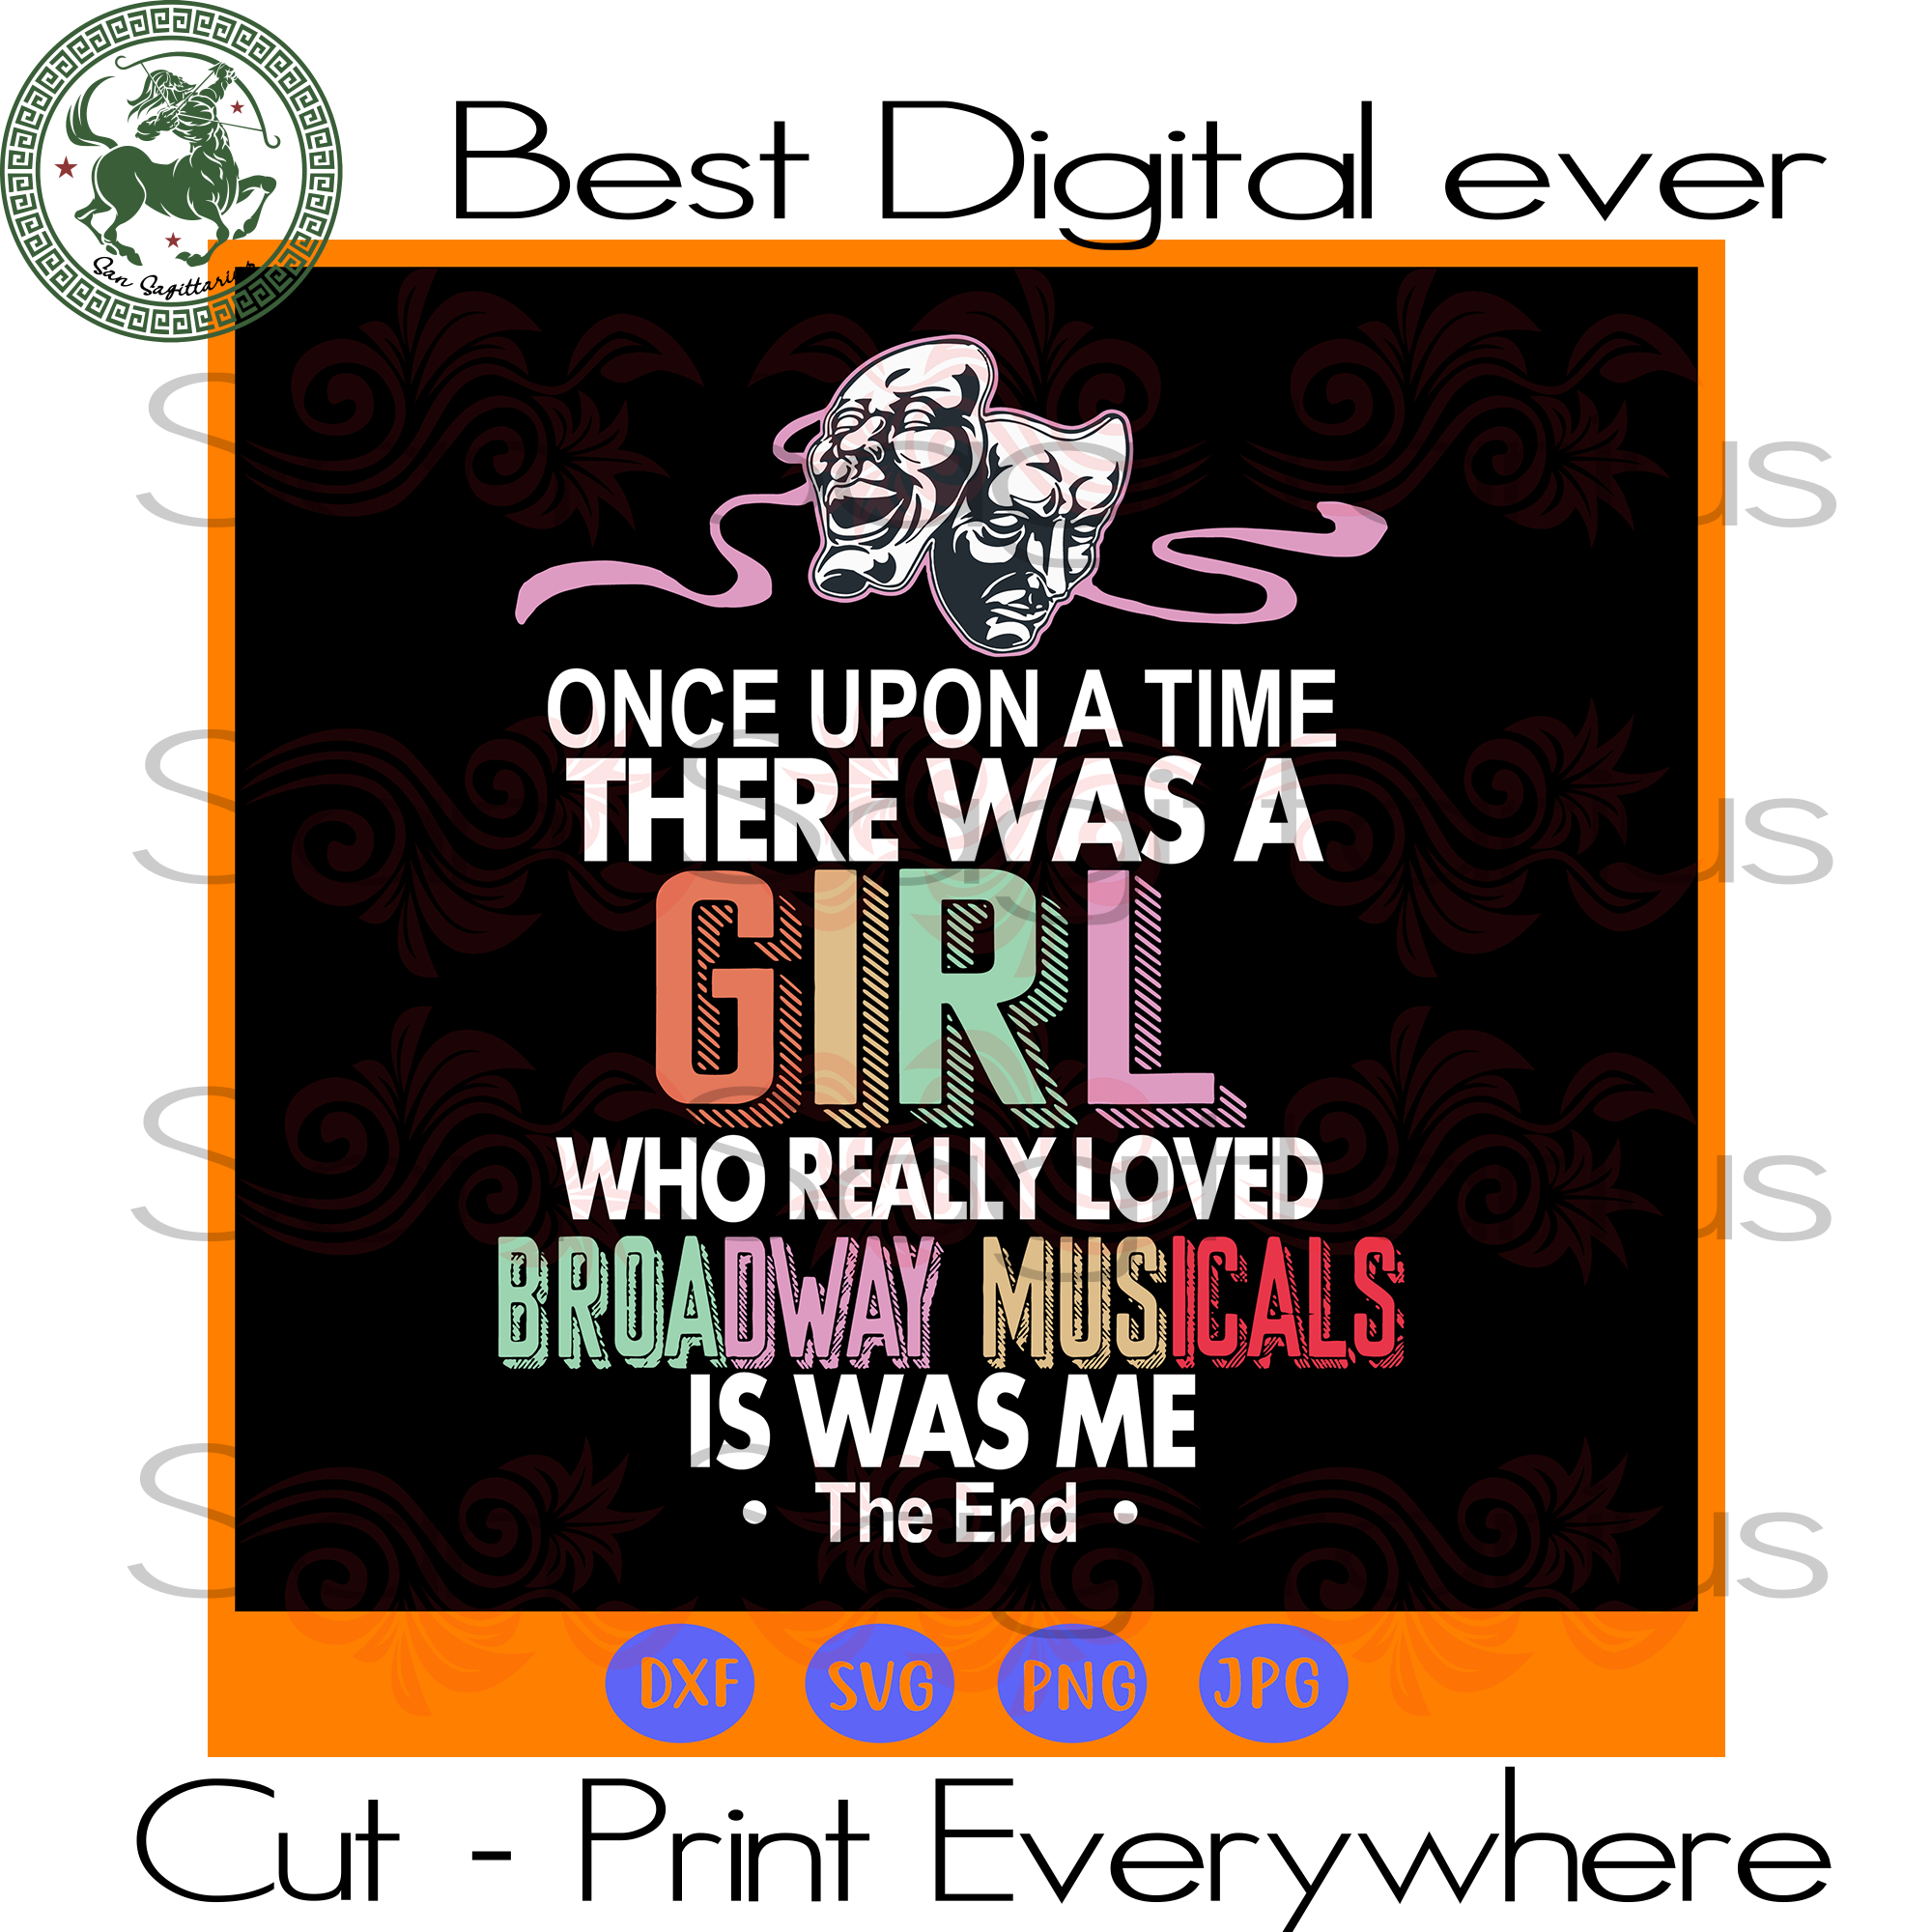 There was a girl who really loved broadway musicals SVG Files For Cricut Silhouette Instant Download | San Sagittarius